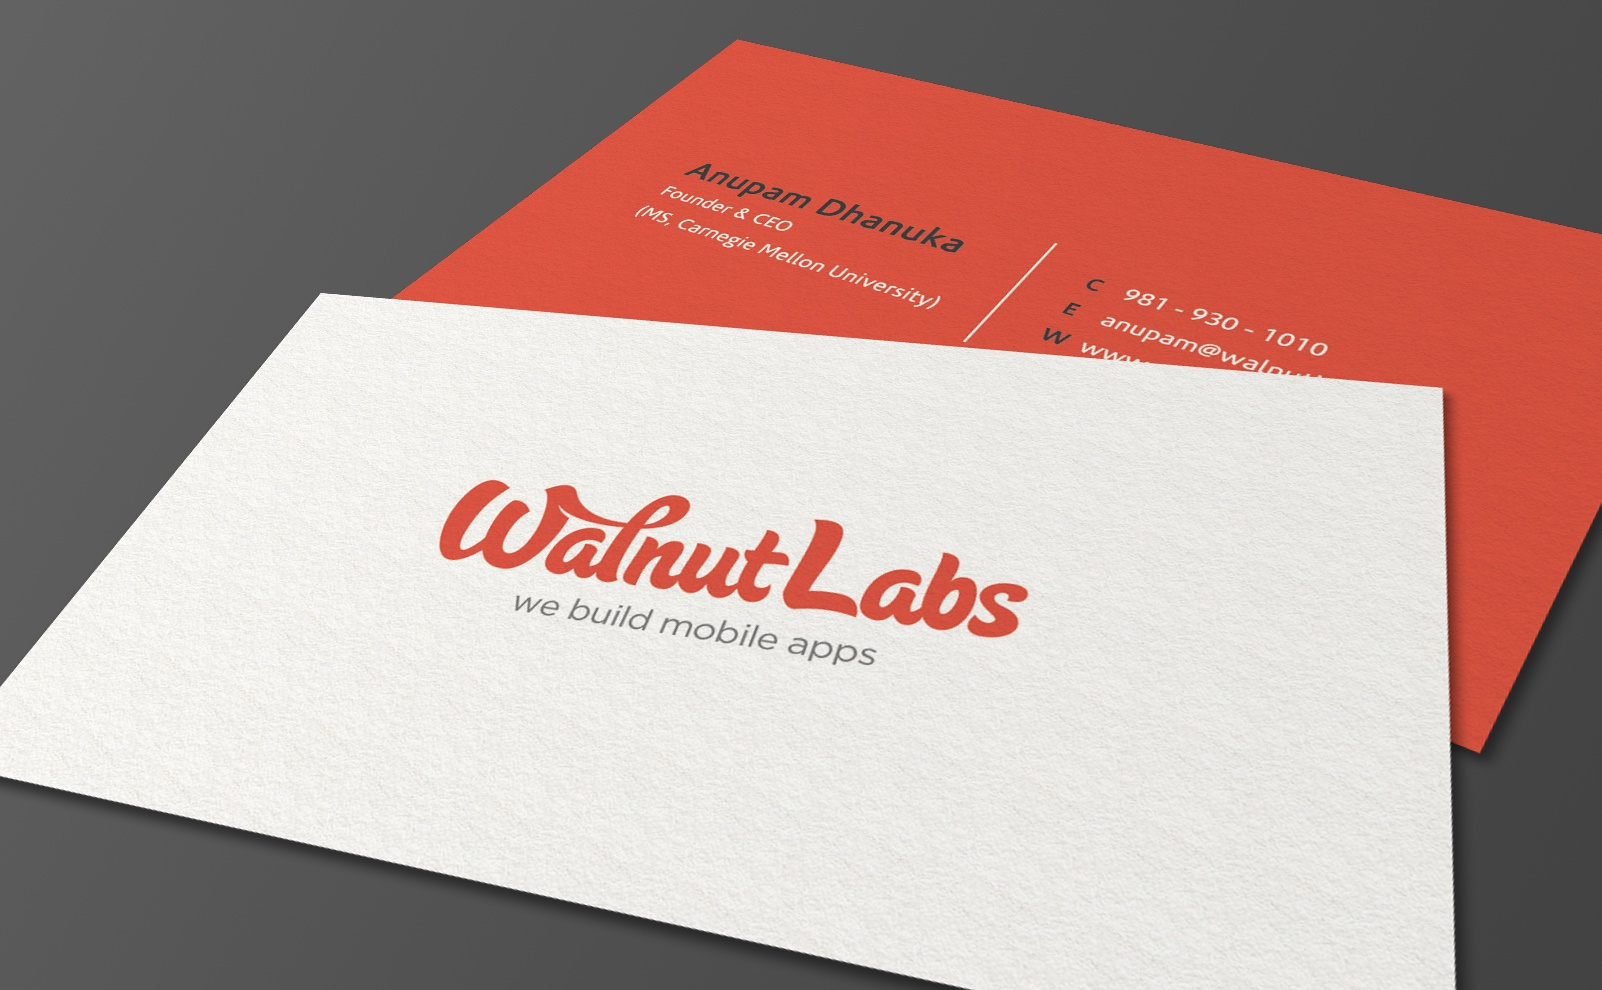 Muhammad ali effendy projects business cards dribbble wallnut labs biz card mockup colourmoves